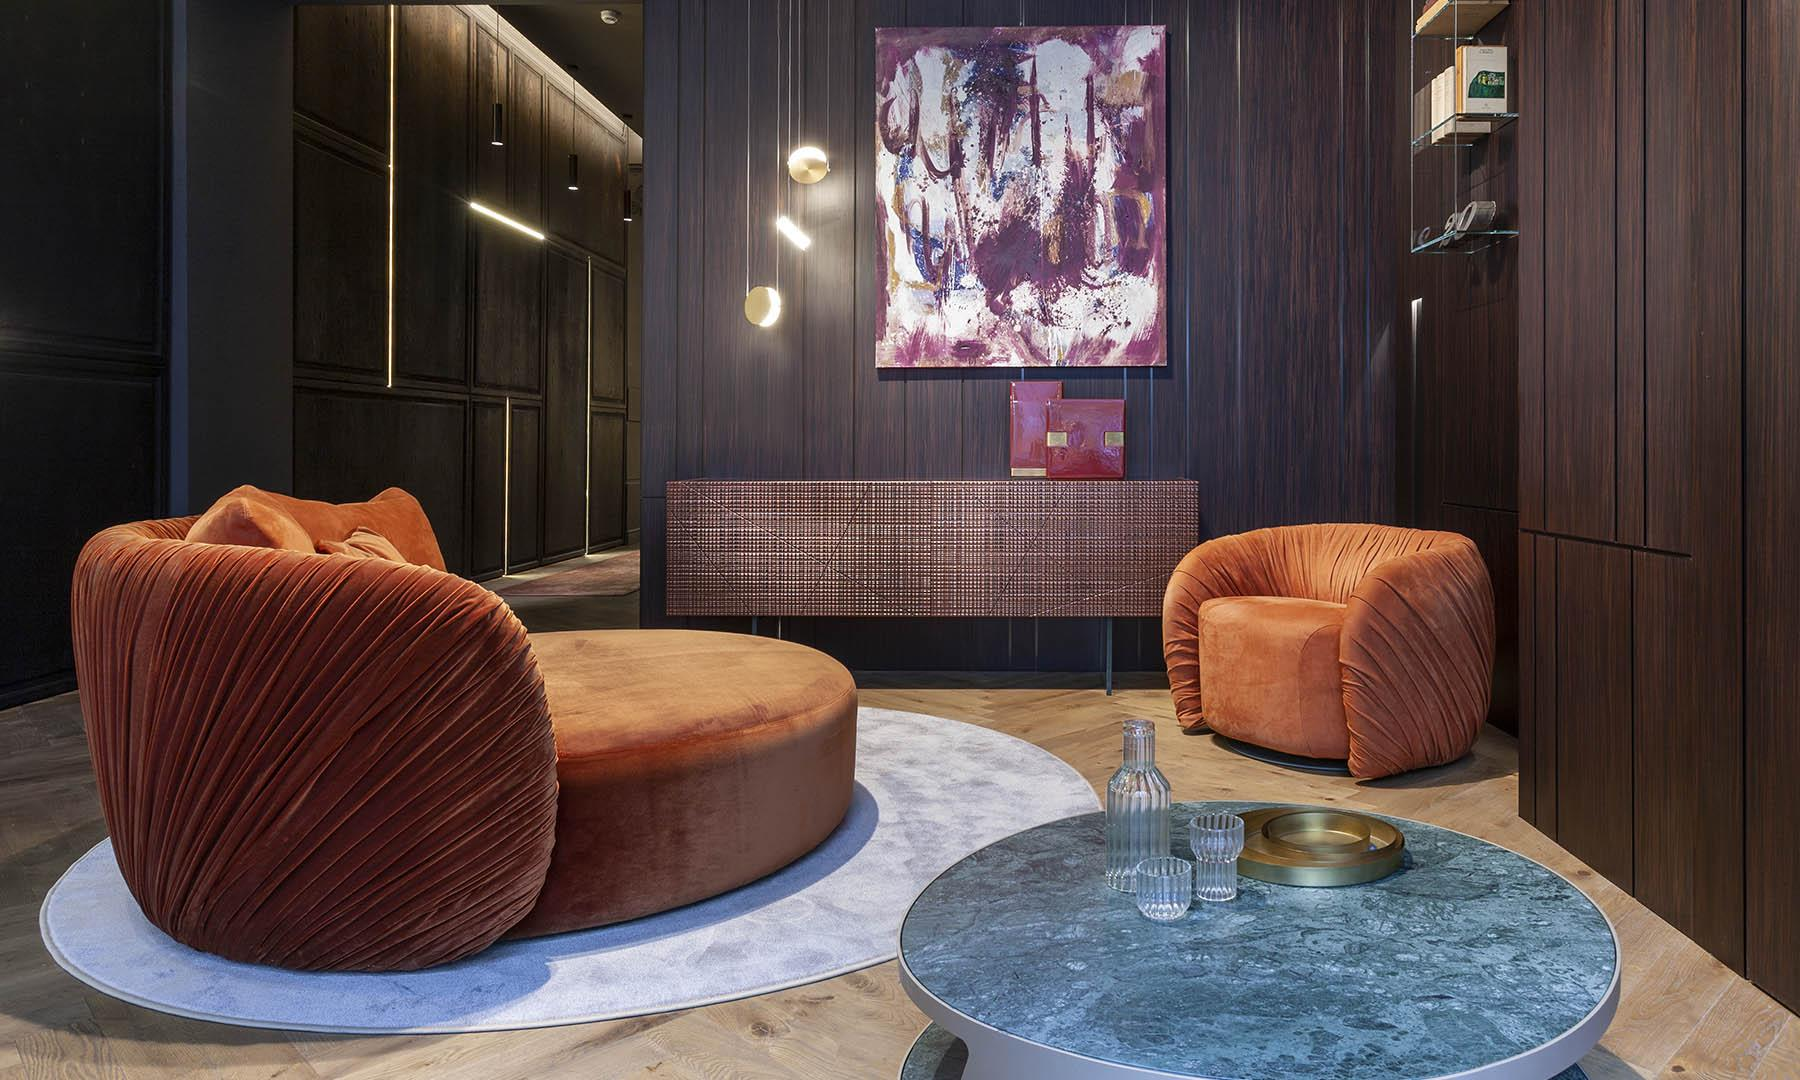 Modern luxury interior design ambience with bespoke funiture